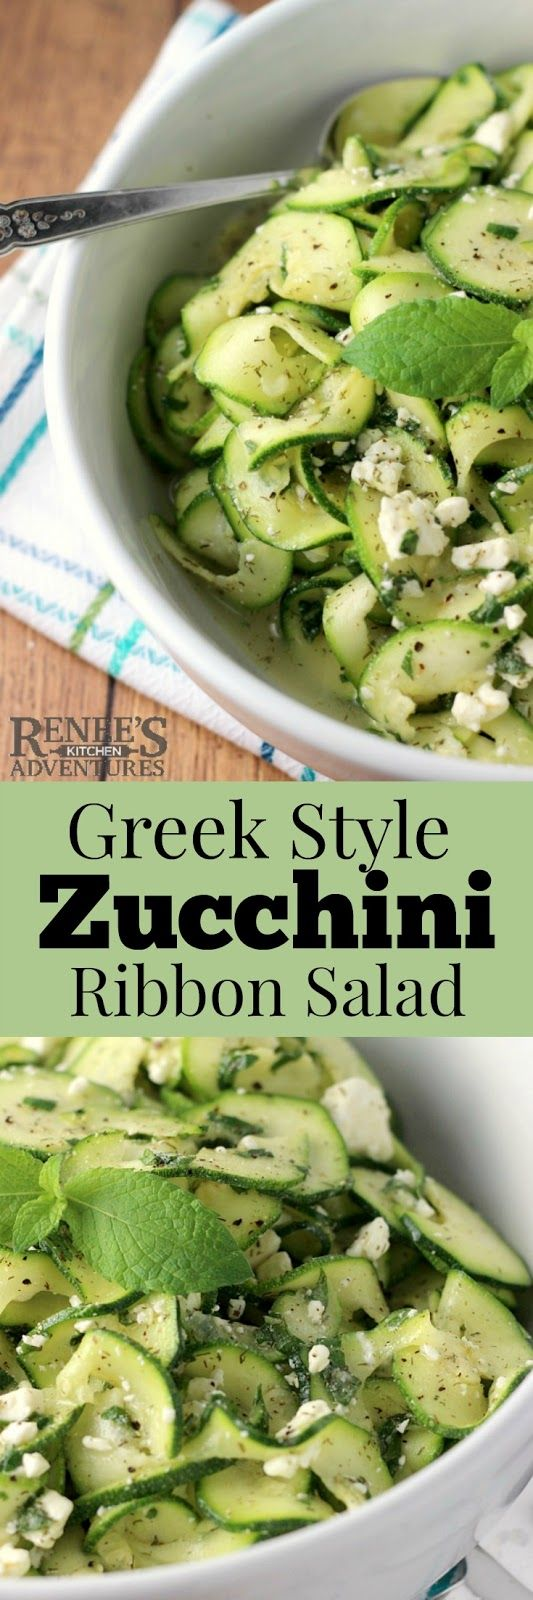 Greek Style Zucchini Ribbon Salad | by Renee's Kitchen Adventures is an easy, healthy recipe for raw zucchini salad. #rkarecipes #zucchini